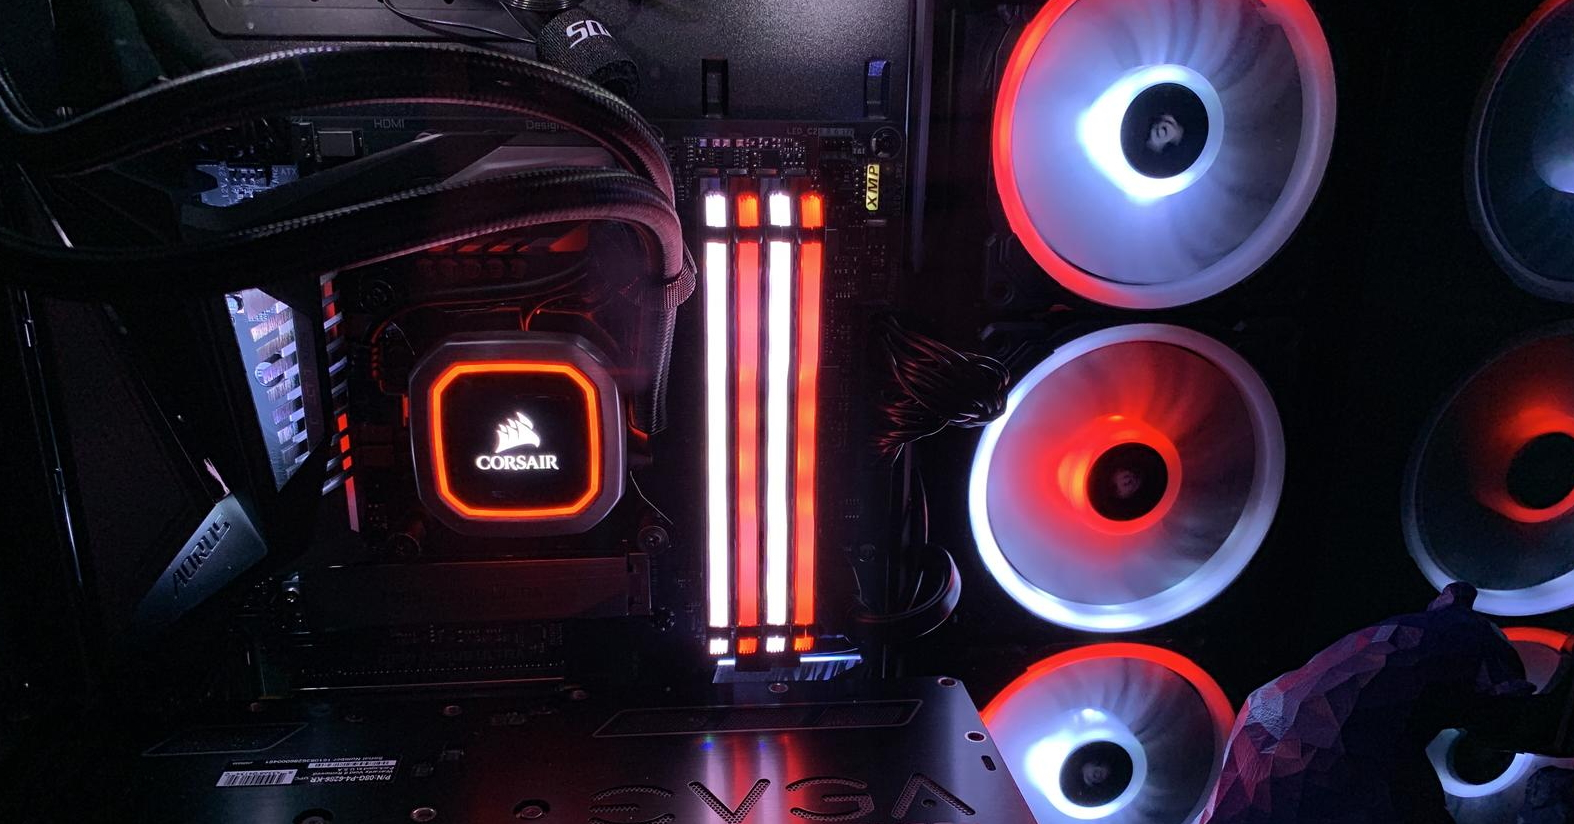 The Corsair RGB RAM and fans can be synchronized via iCUE. (Photo by Pausanius at PCPP)